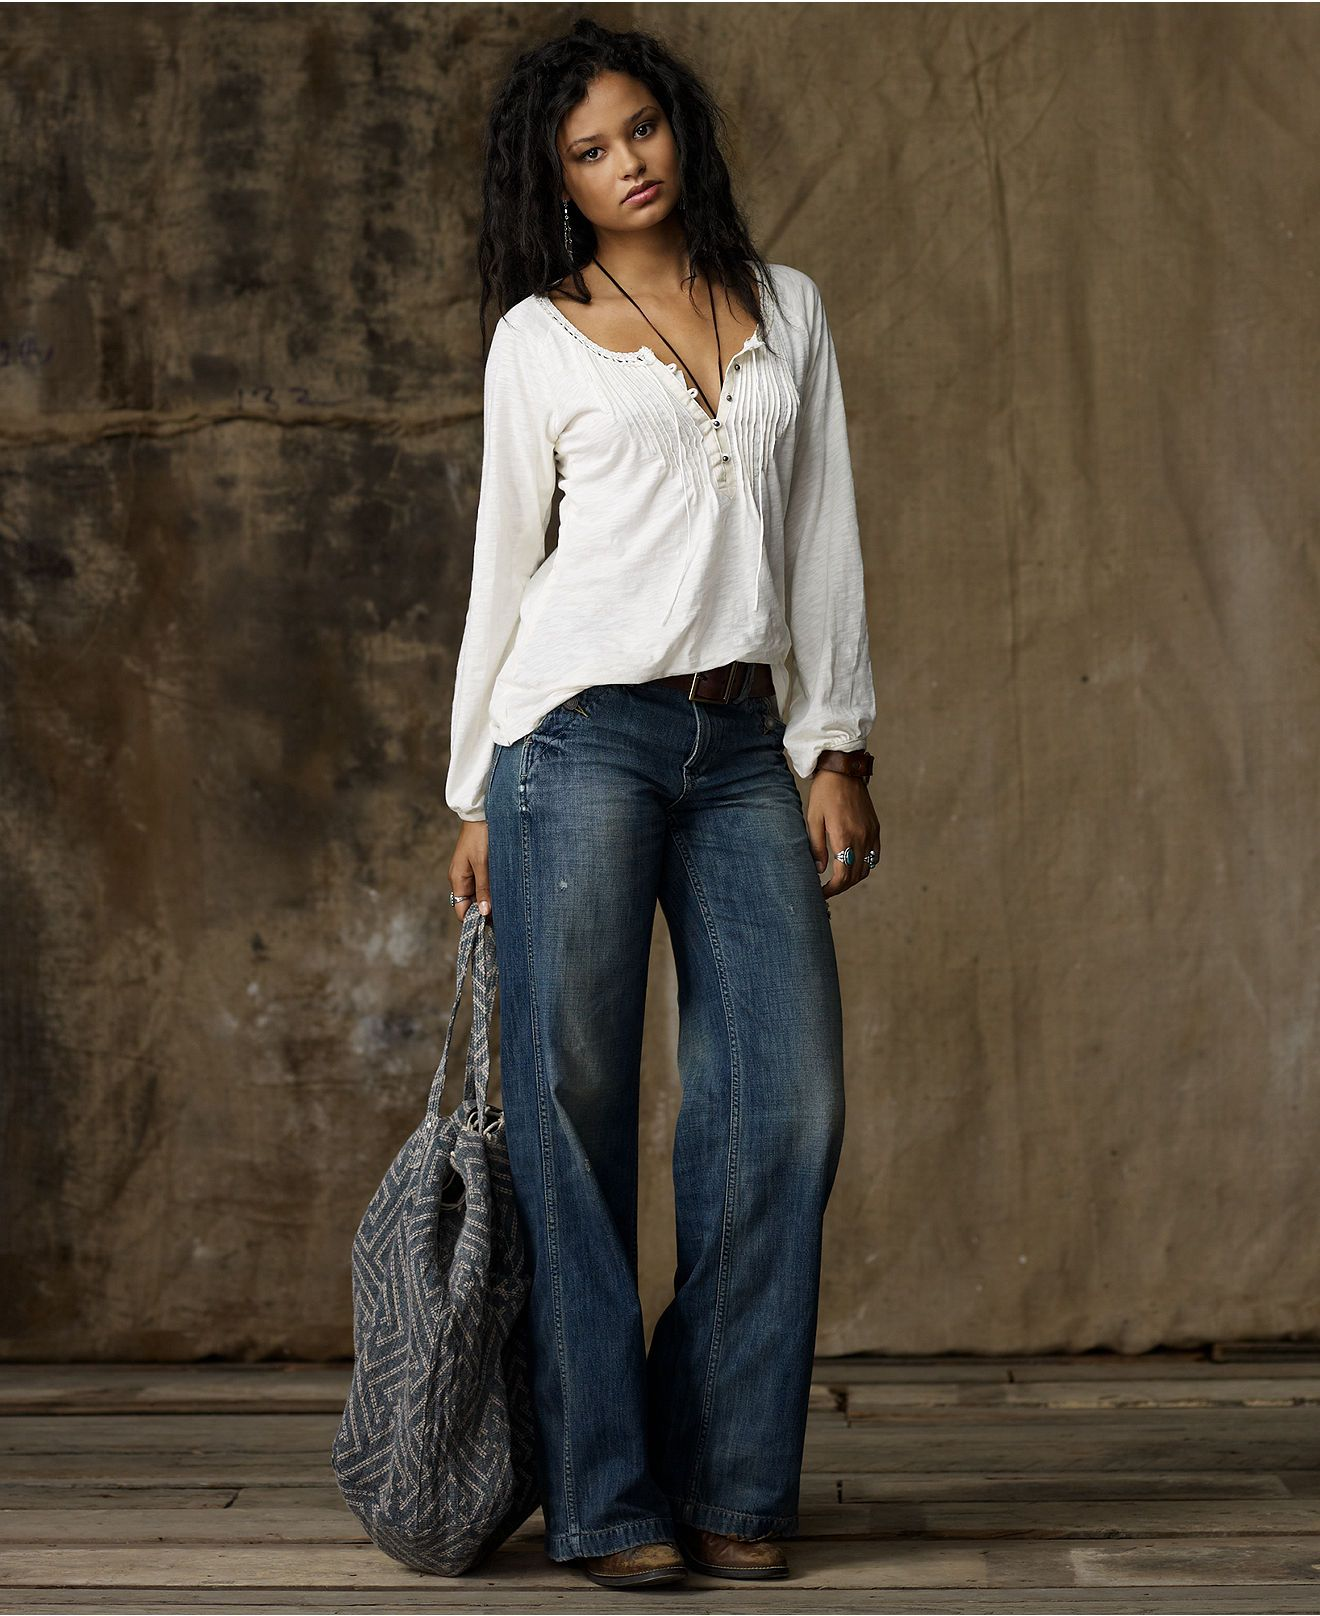 Go Buy Now: '70s-Style Jeans - Celebrity Style and Fashion from ...